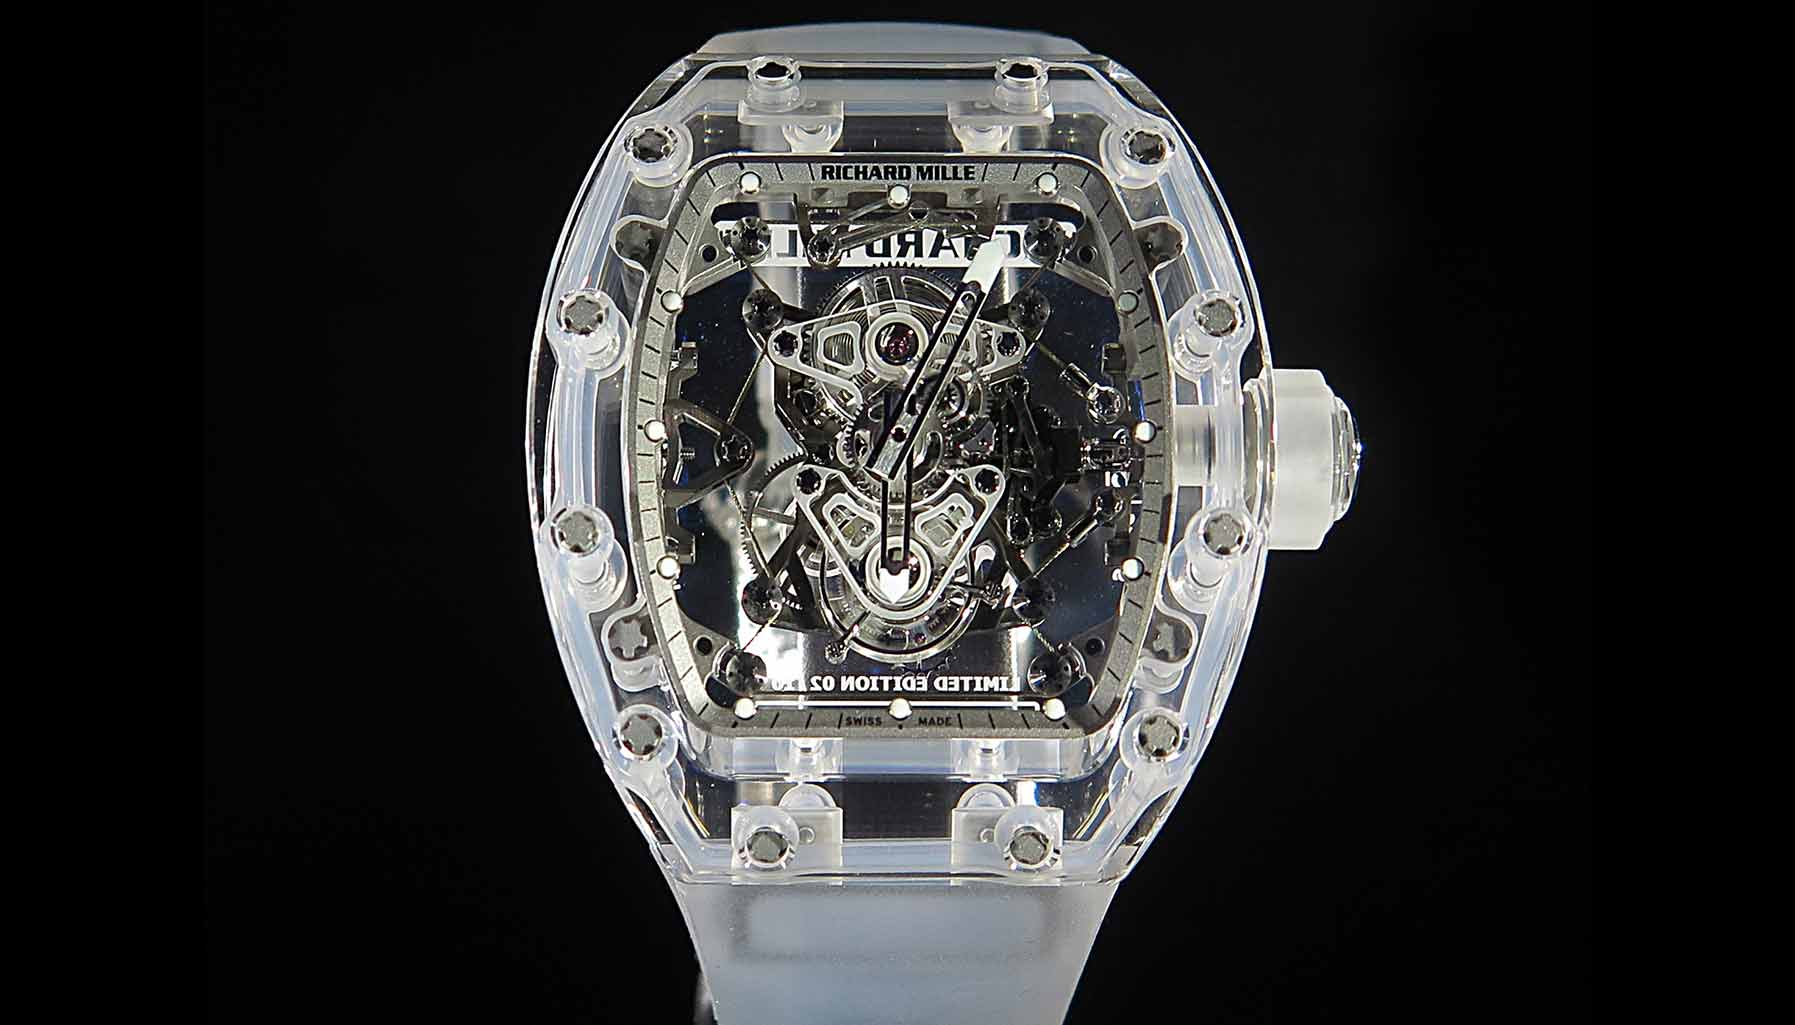 Richard Mille RM56-02, Sotheby's watch auction